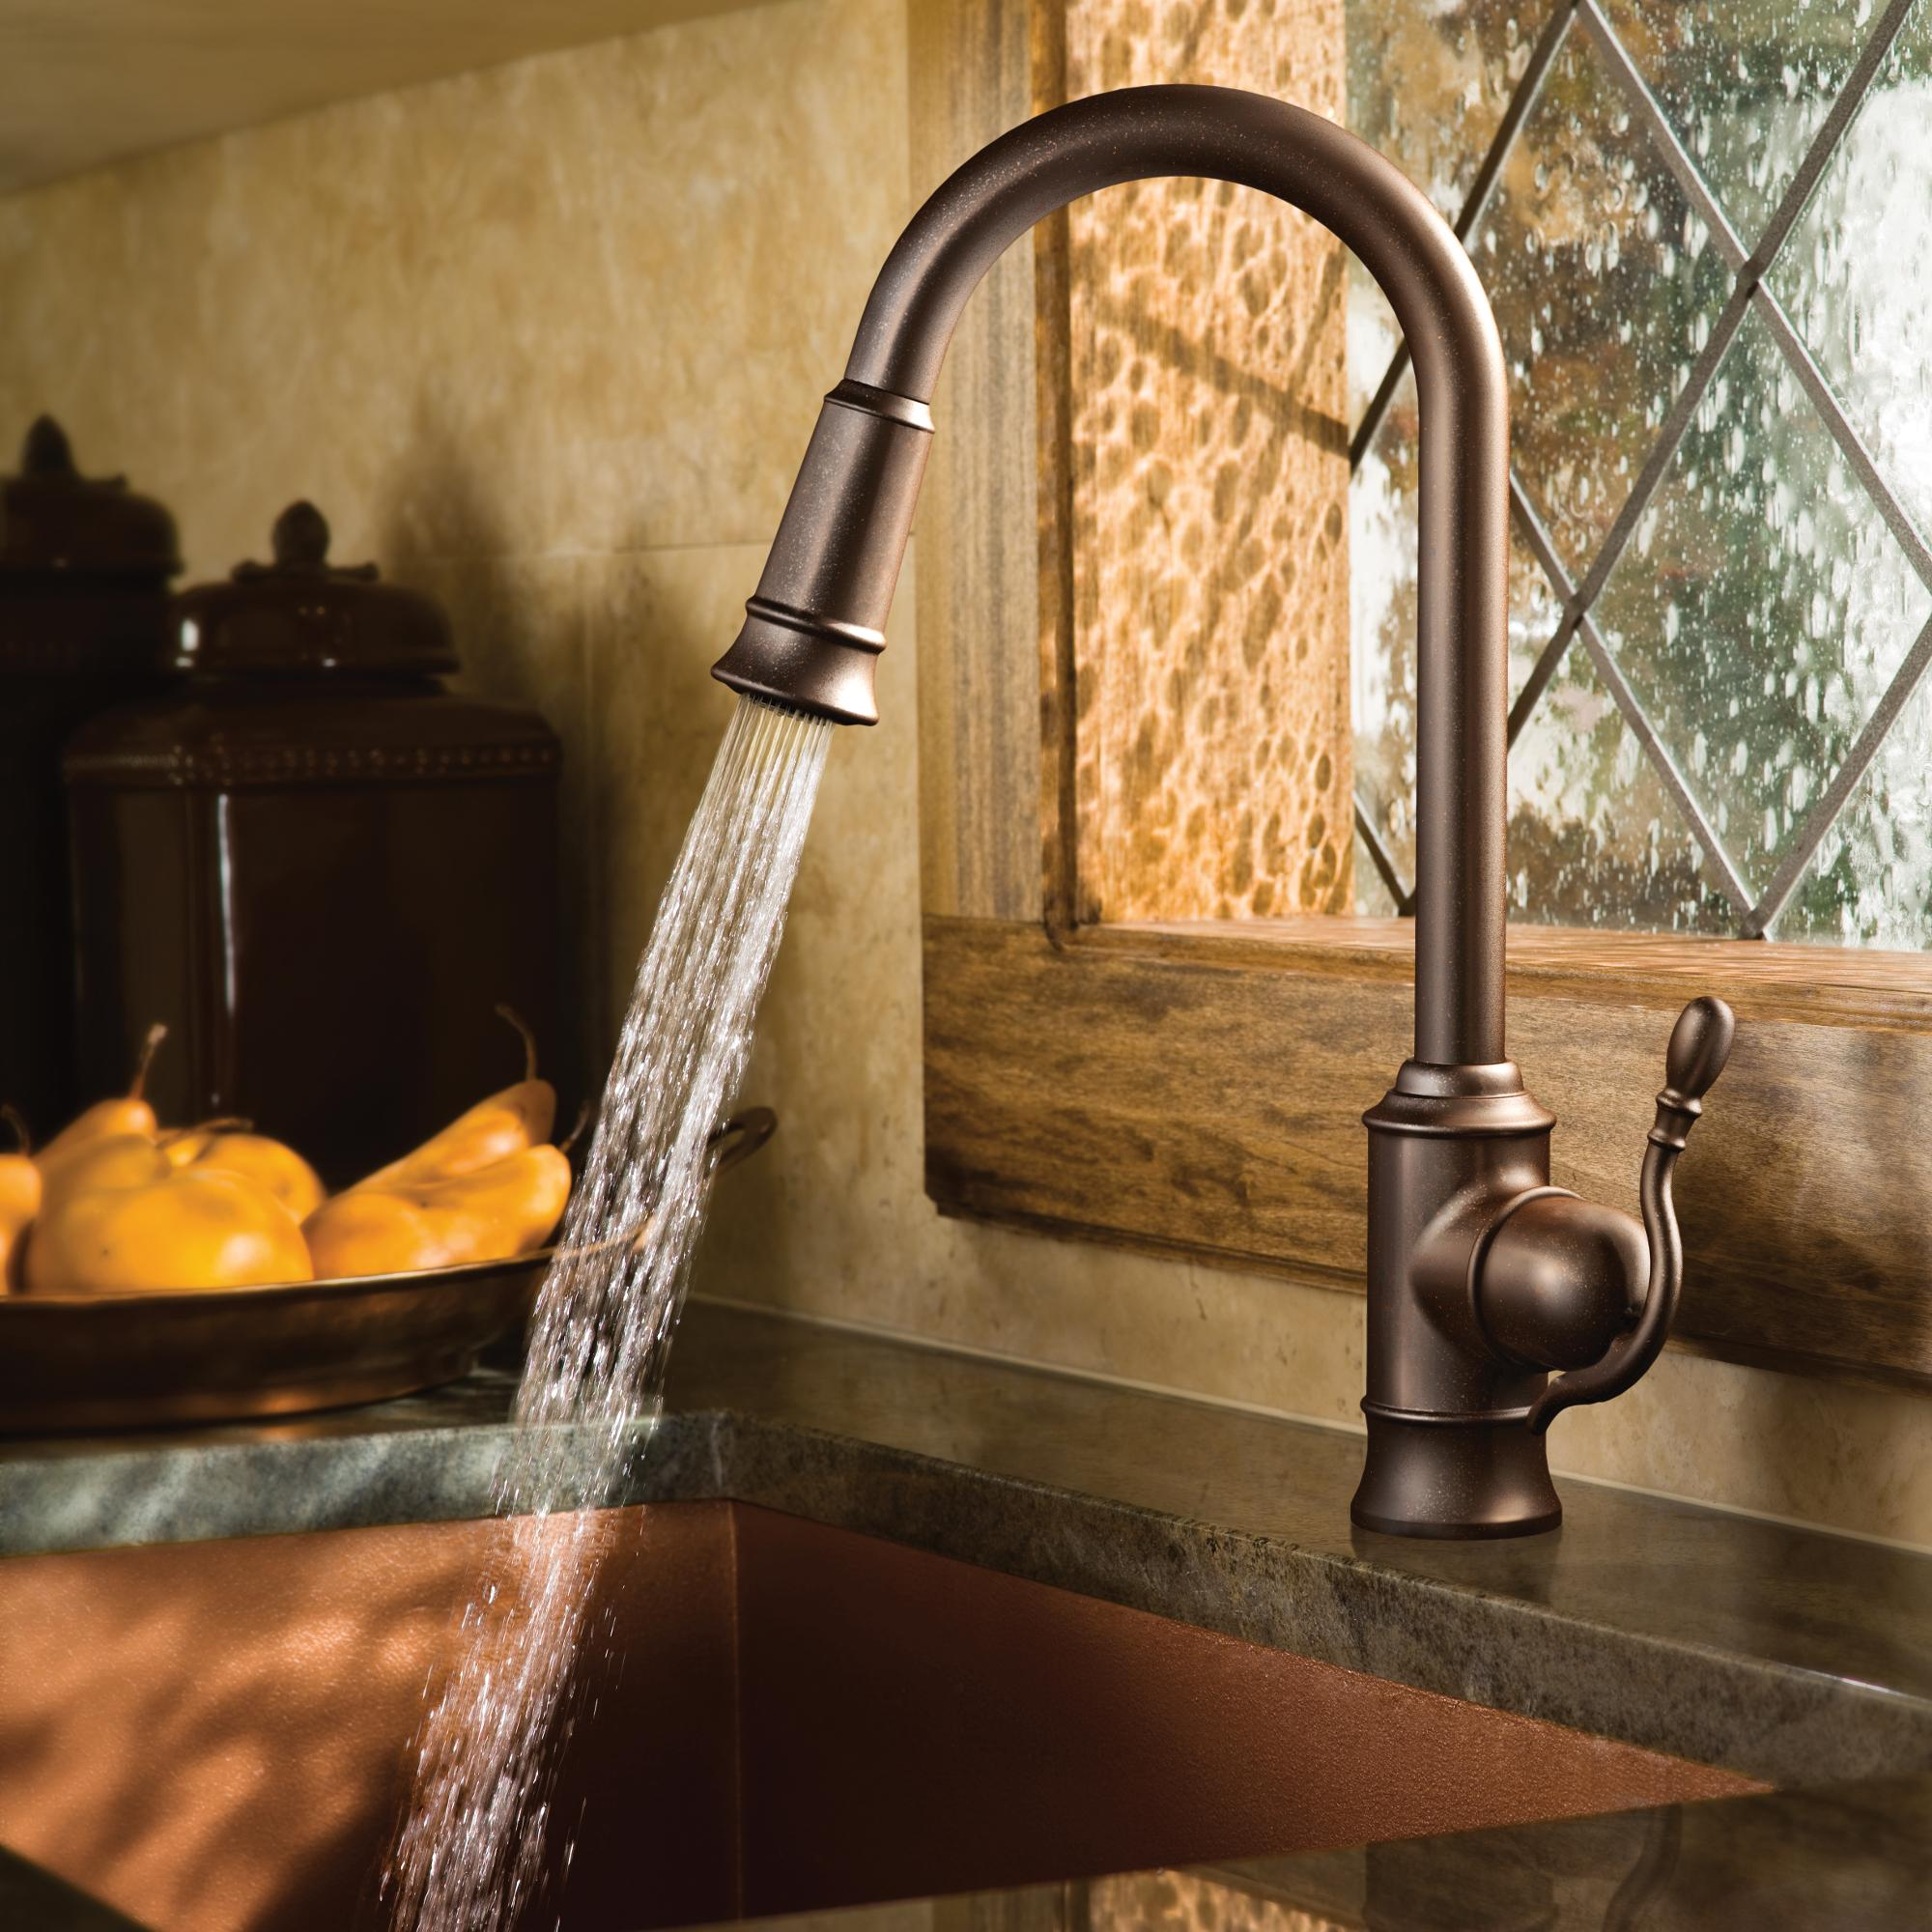 49 Unique Moen Kitchen Faucet Filter Pictures - Kitchen Faucet Blog